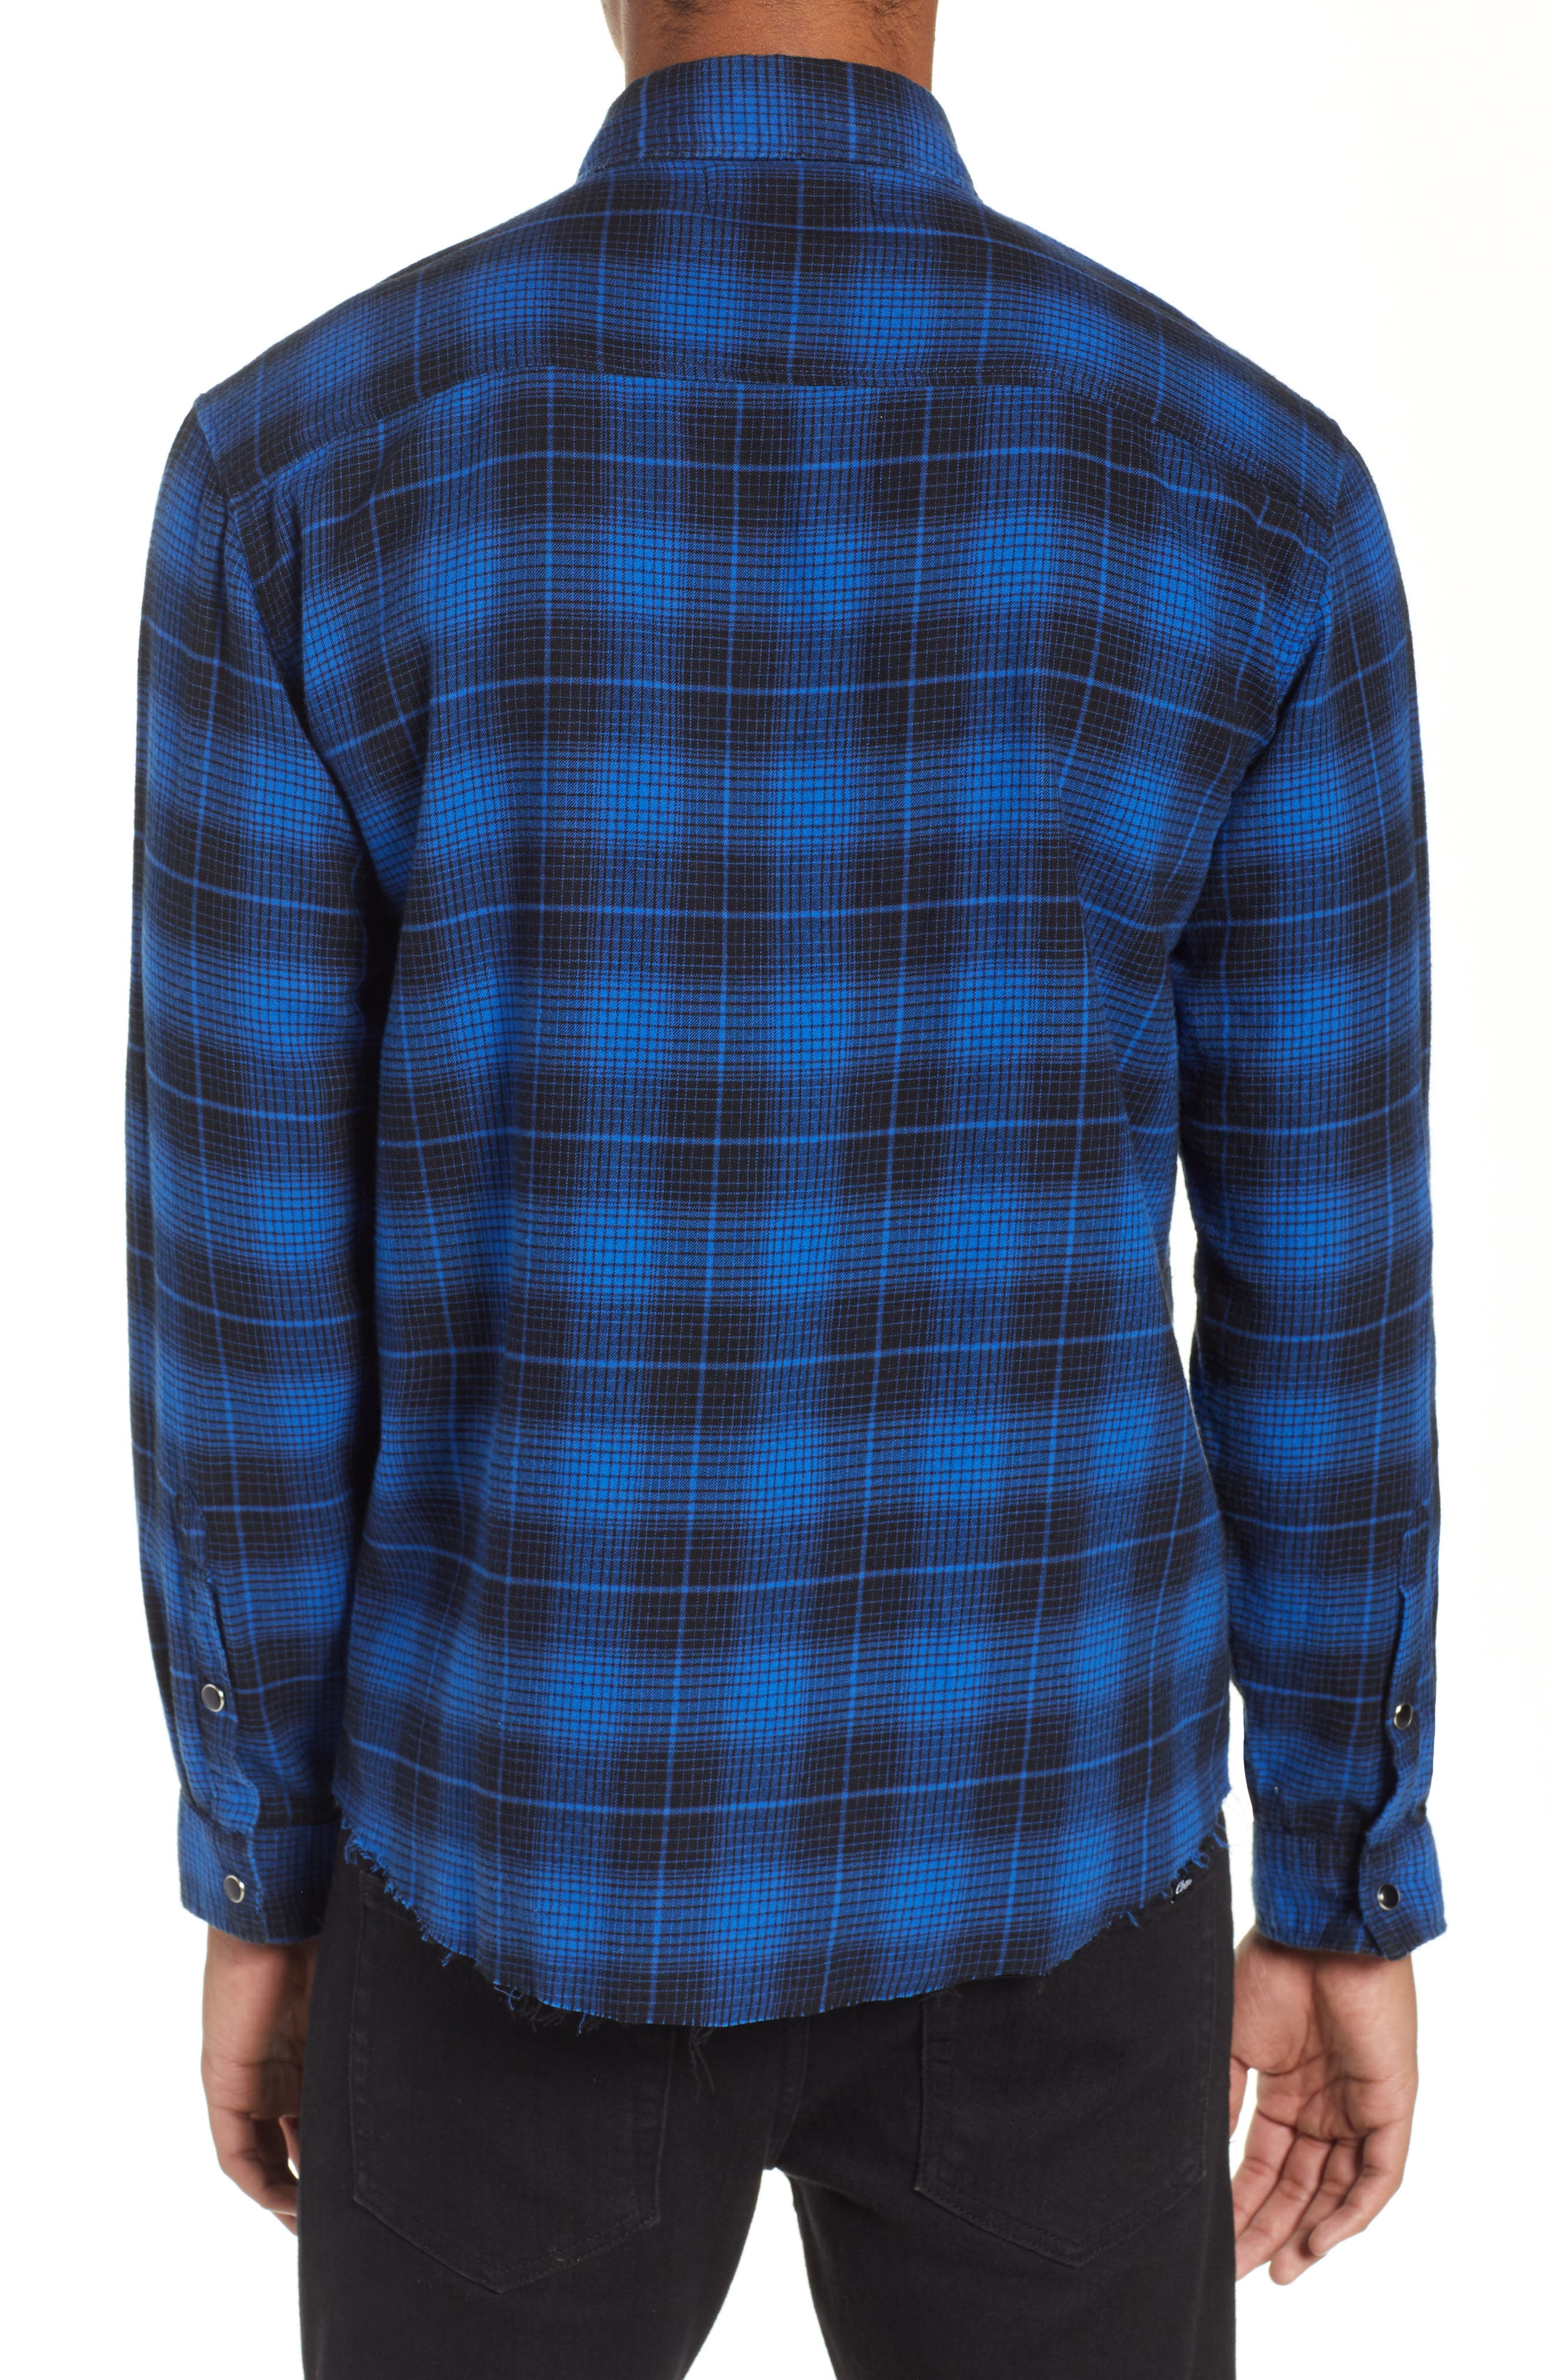 THE KOOPLES,                             Plaid Flannel Shirt,                             Alternate thumbnail 3, color,                             ROYAL BLUE / BLACK